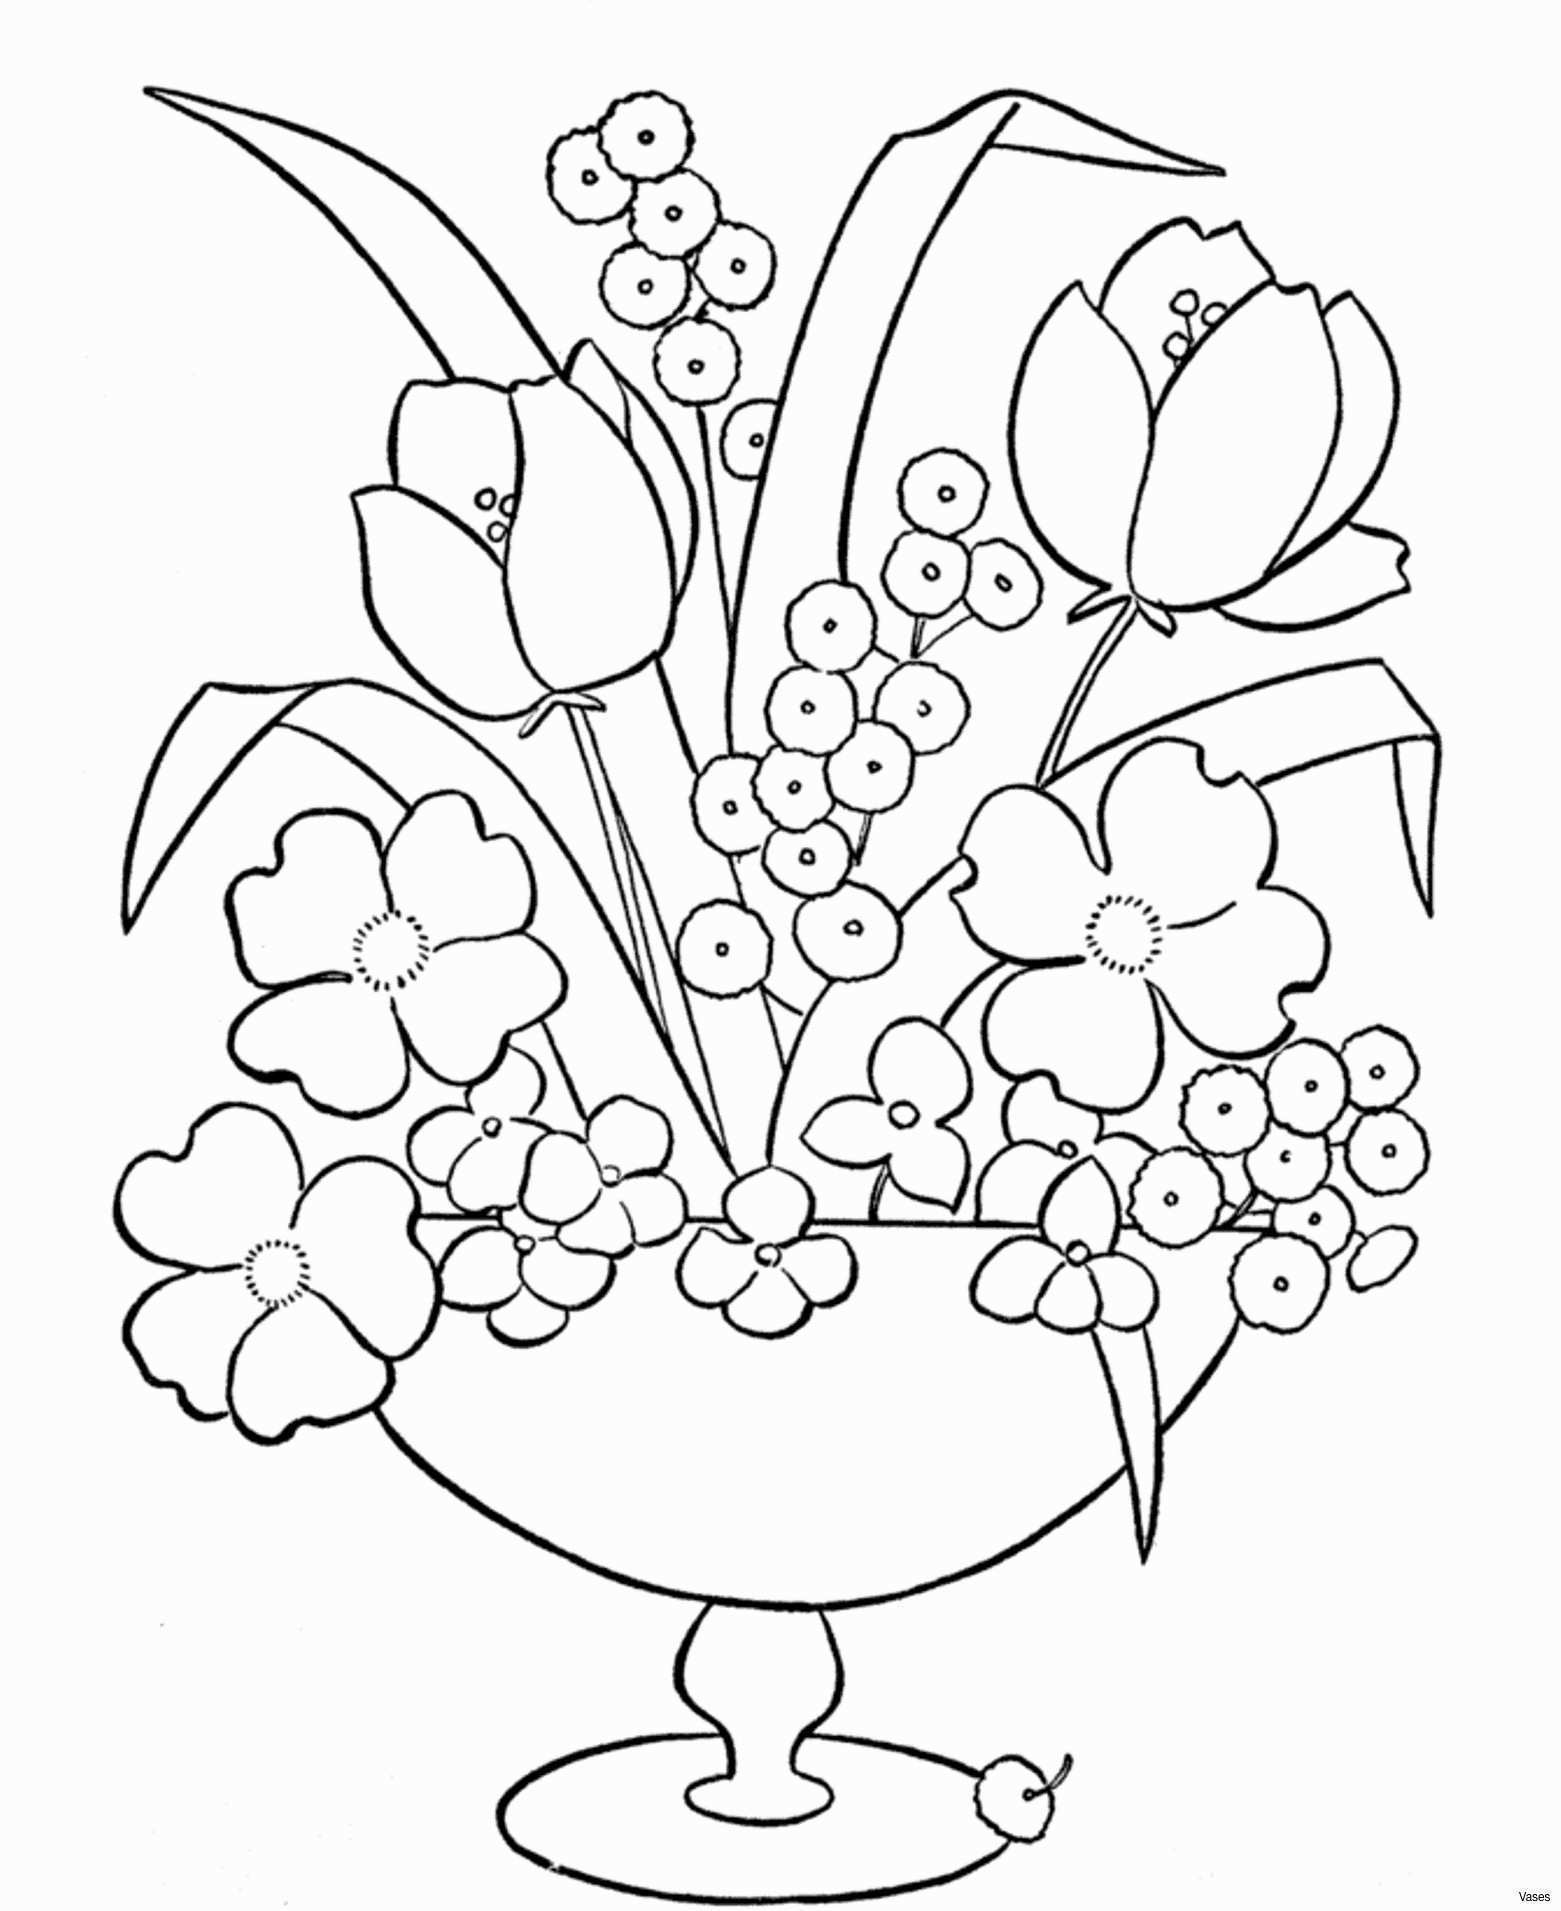 Colour Page for Kids Luxury Cool Vases Flower Vase Coloring Page